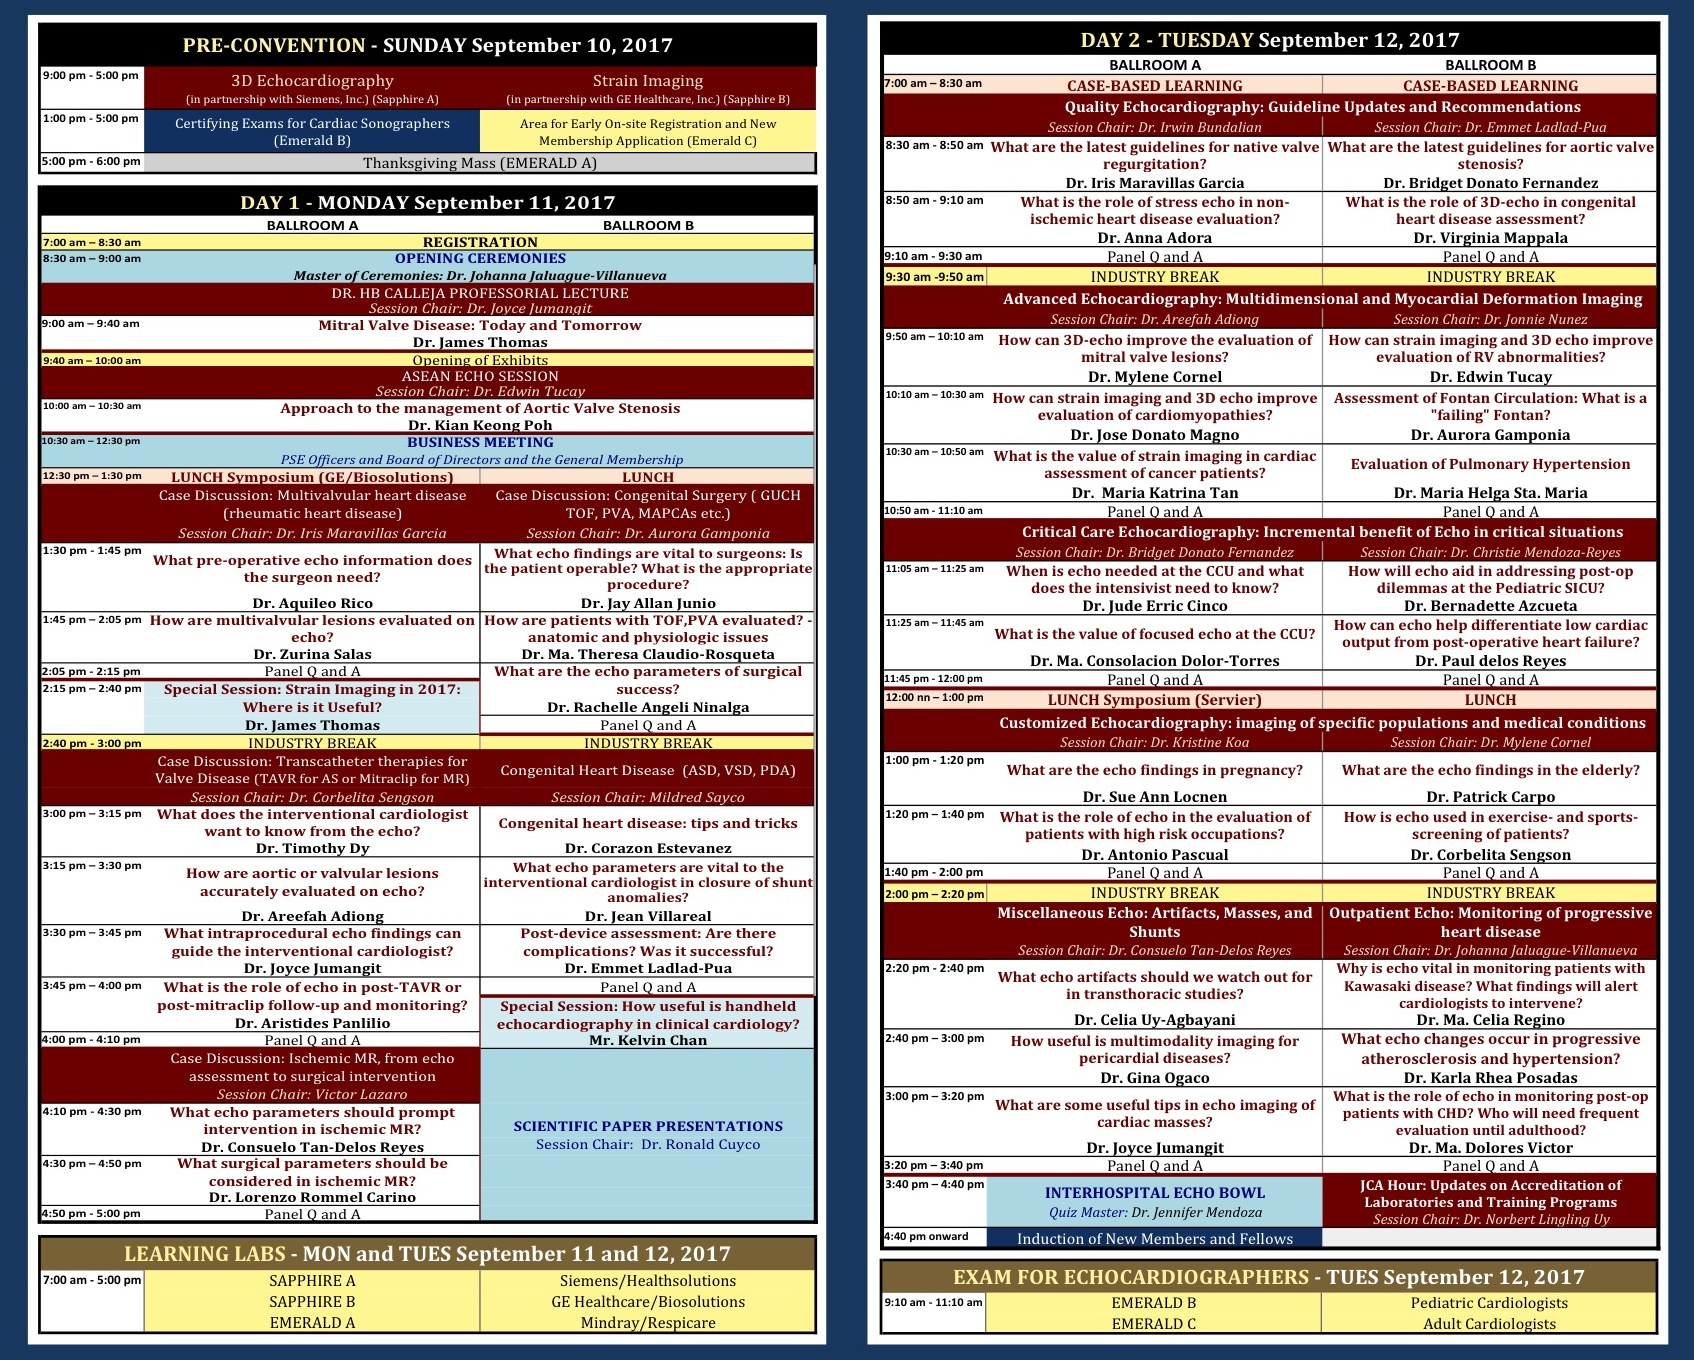 PSEANNUAL2017 - program at a glance.jpg